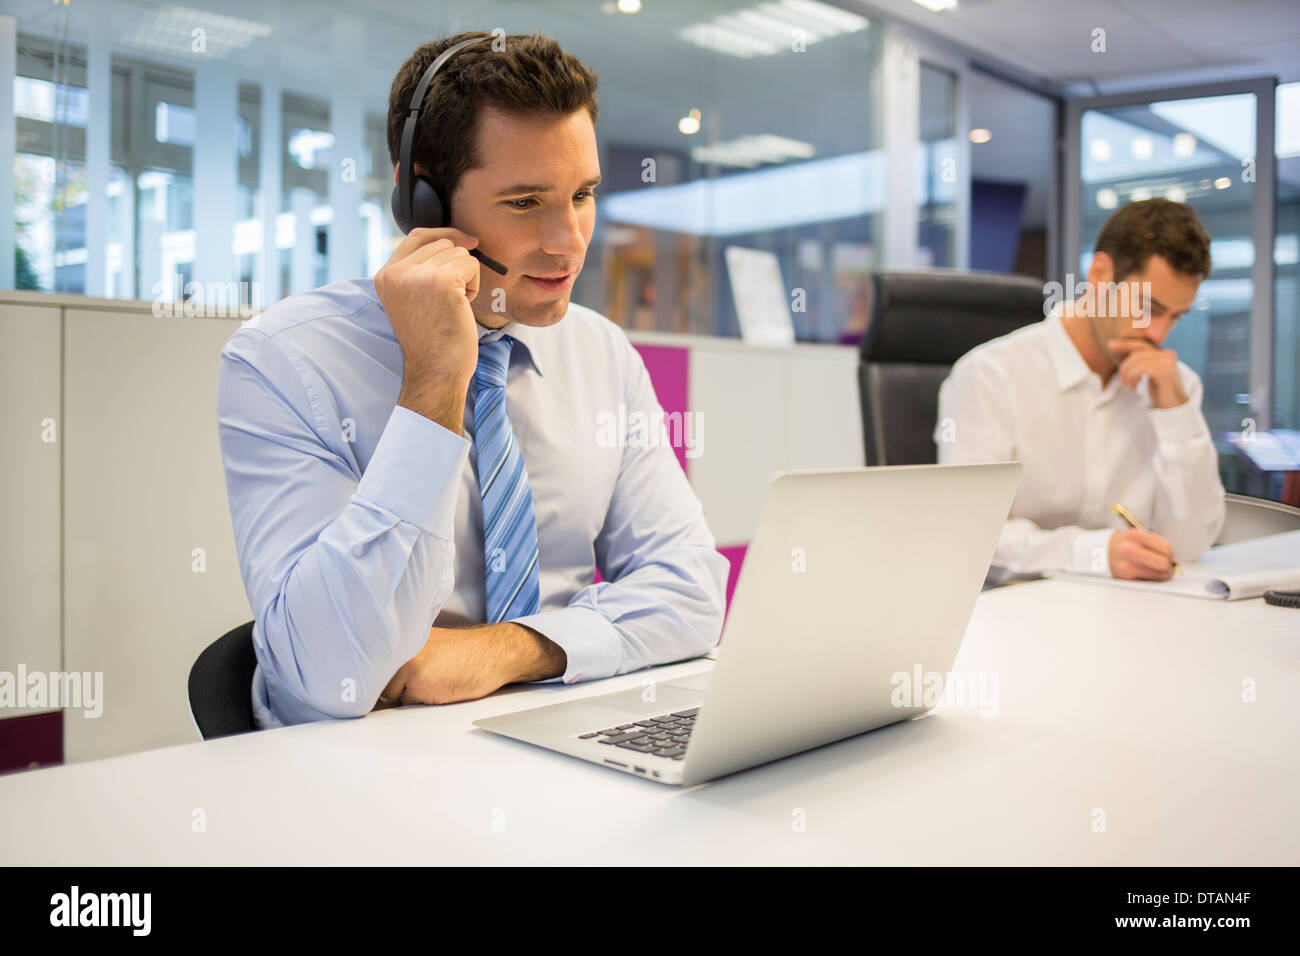 Businessman in office on phone with headset, call conference - Stock Image